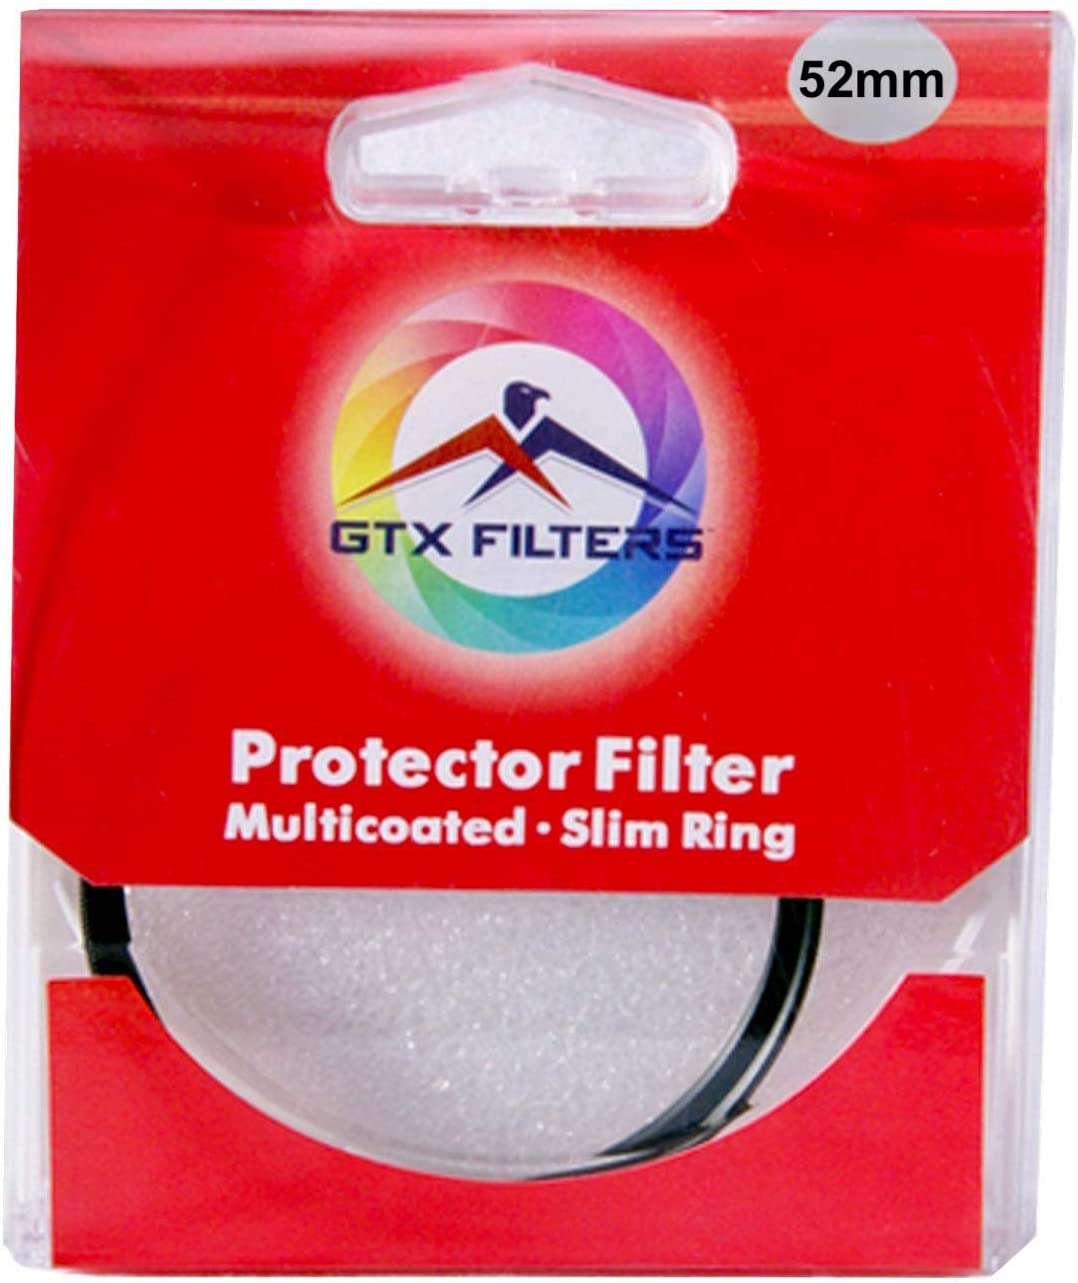 GTX FILTERS GF-X//PROTECTOR52 X Series Protector 52mm Filter Black